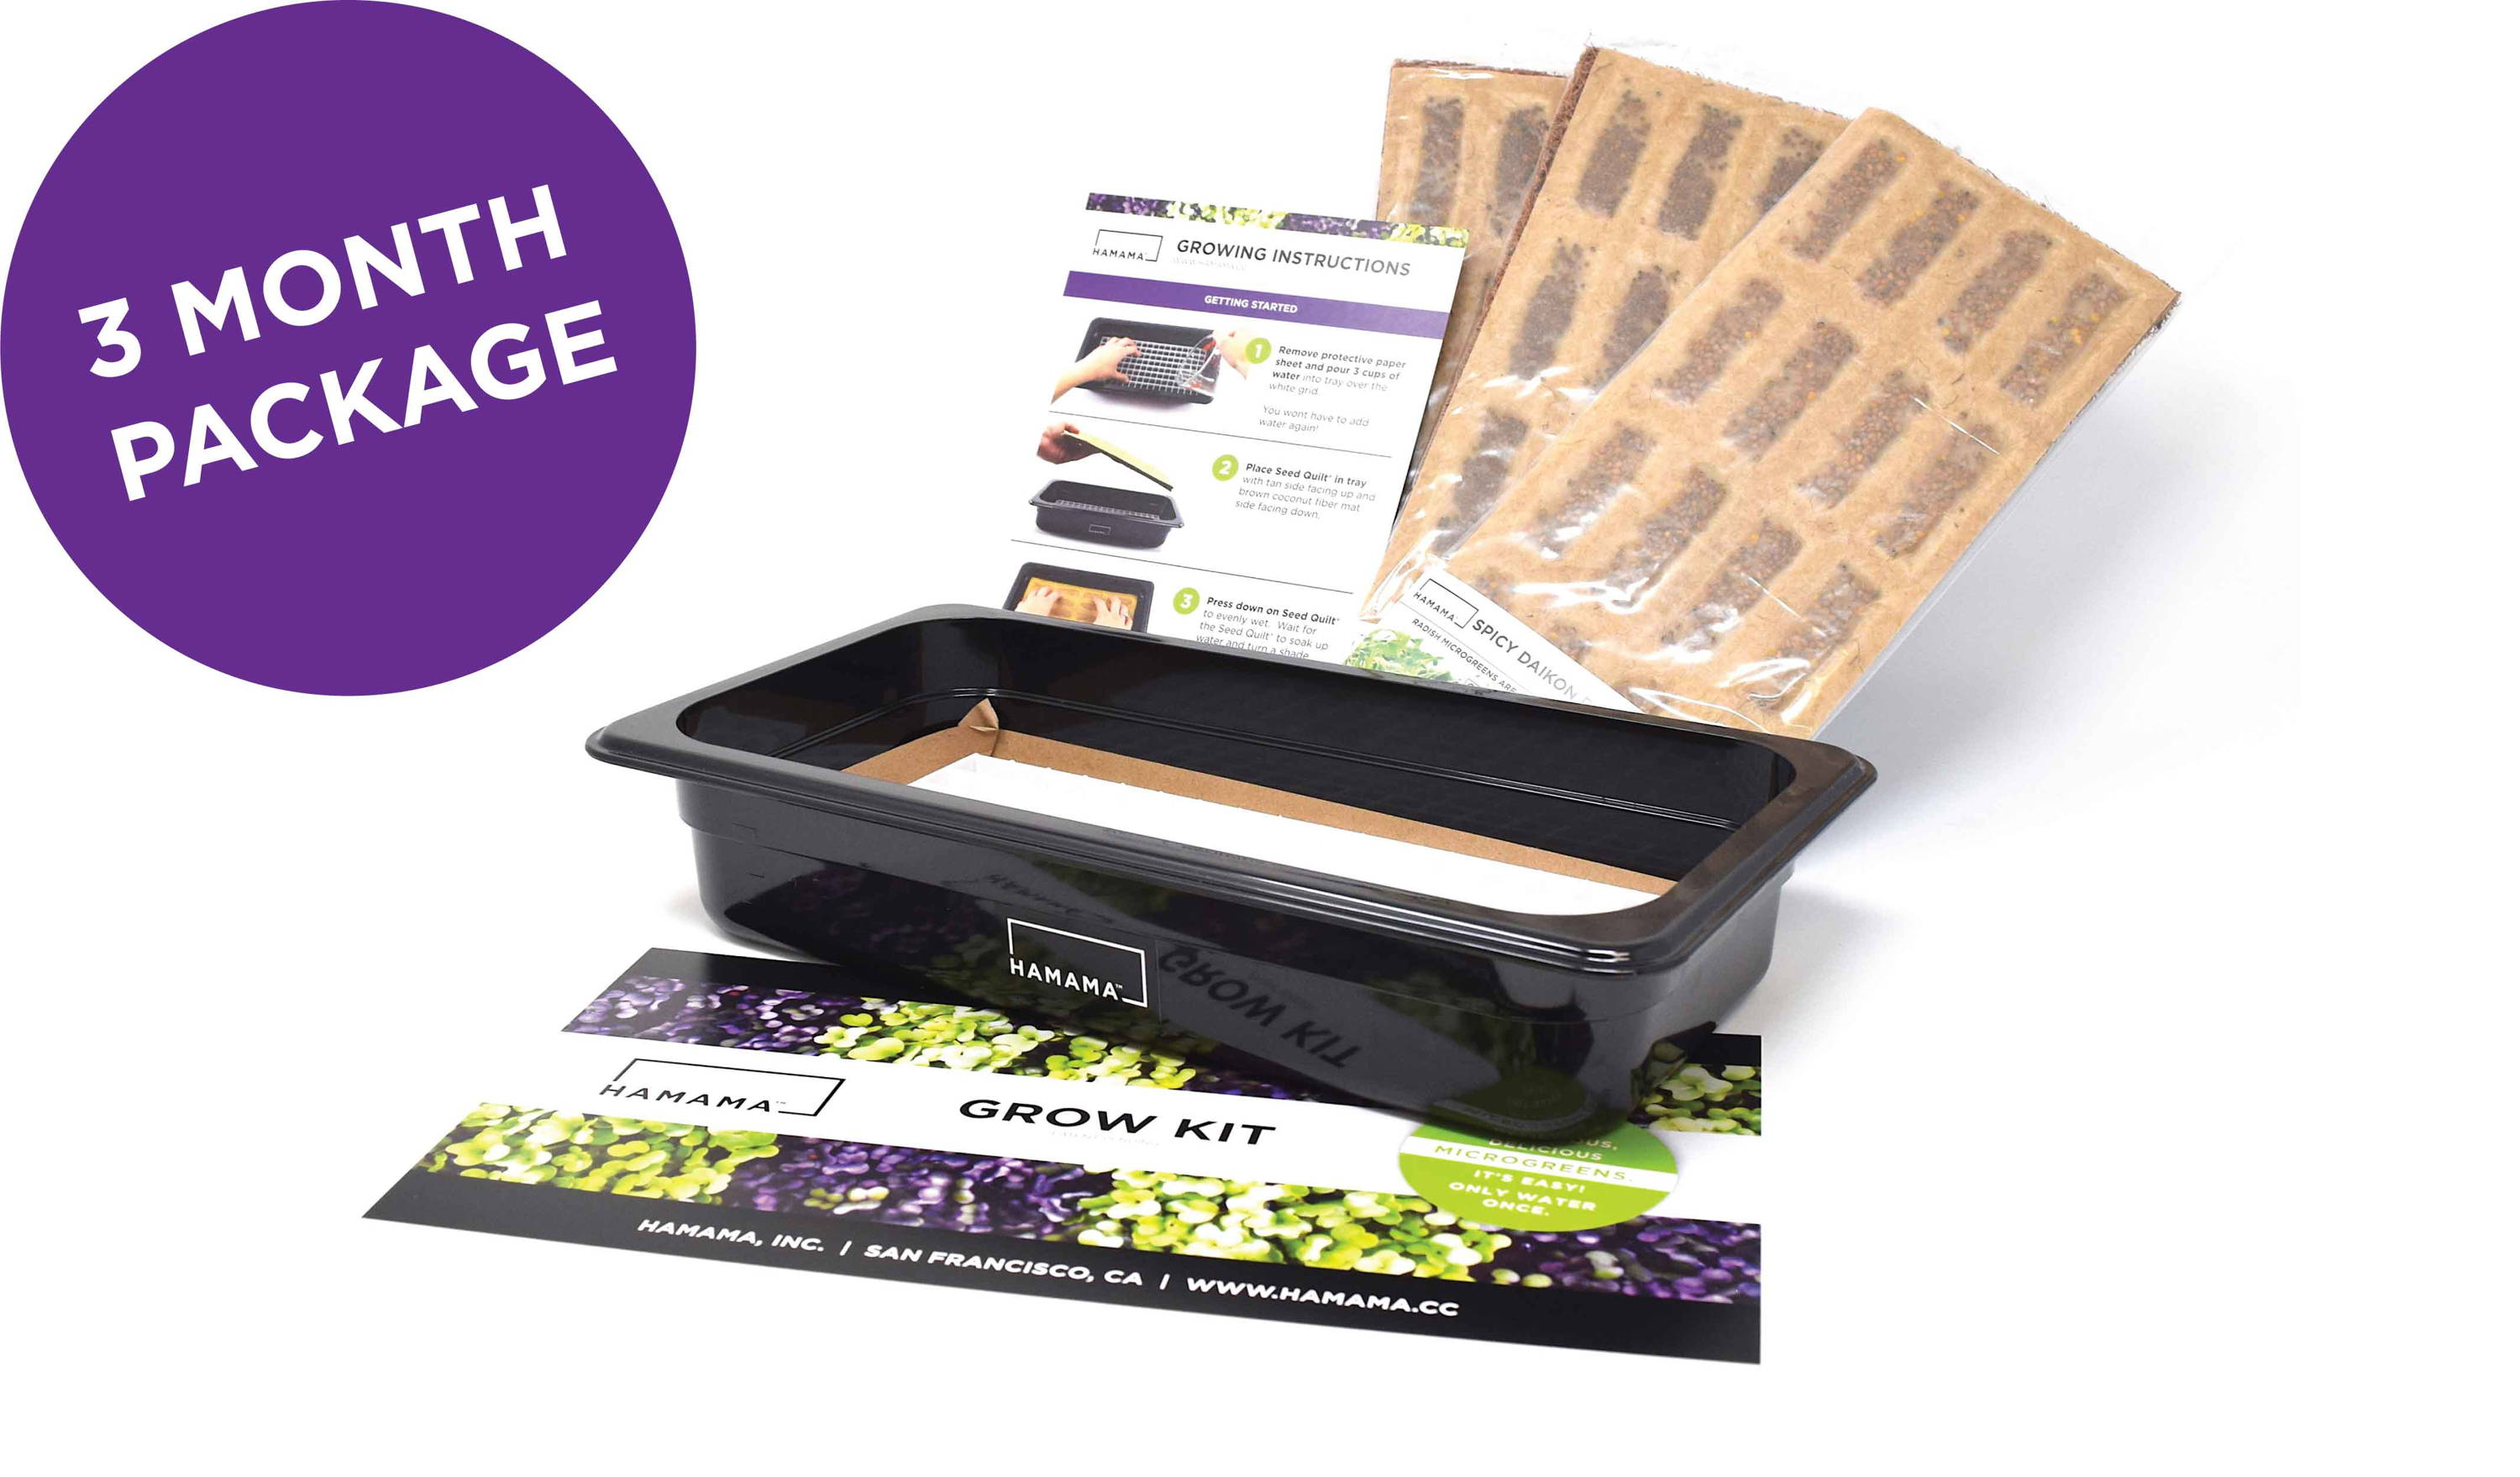 Three month gift Grow kit bundle for growing microgreens at home year round.  Includes grow tray, instructions, and nine Seed Quilts, enough for three months of growing.